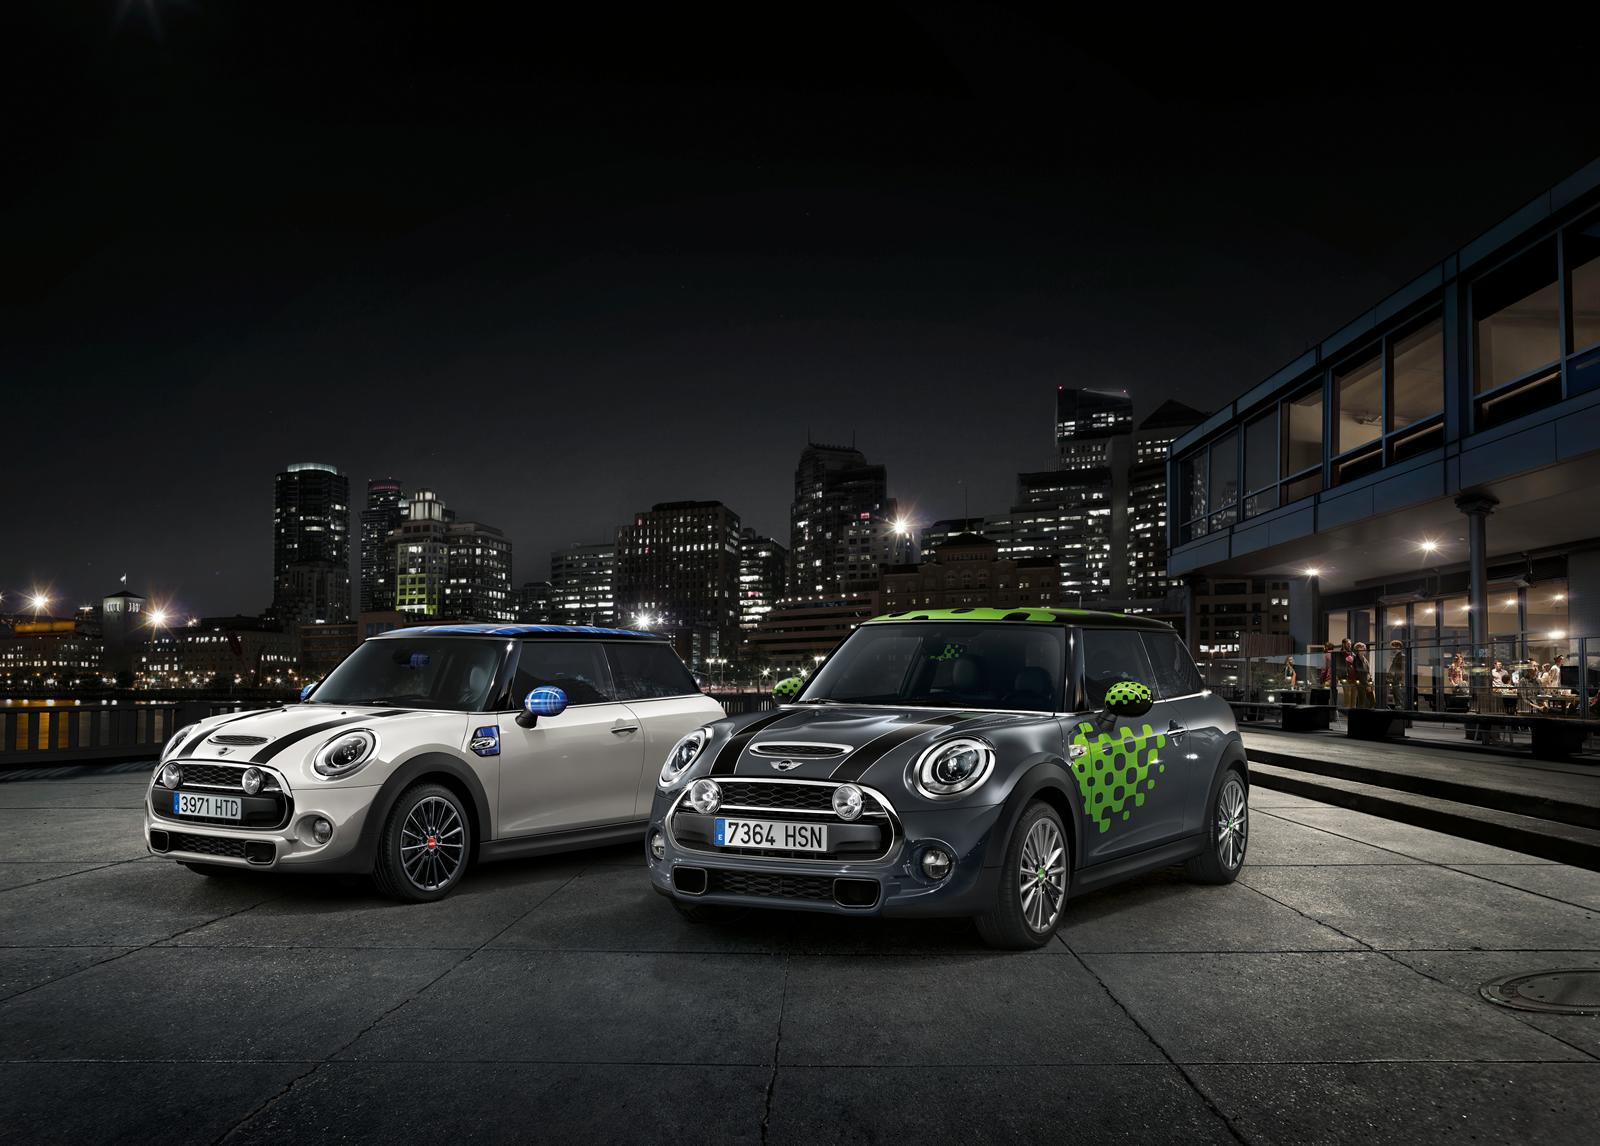 New Mini Cooper S with John Cooper Works package white and black